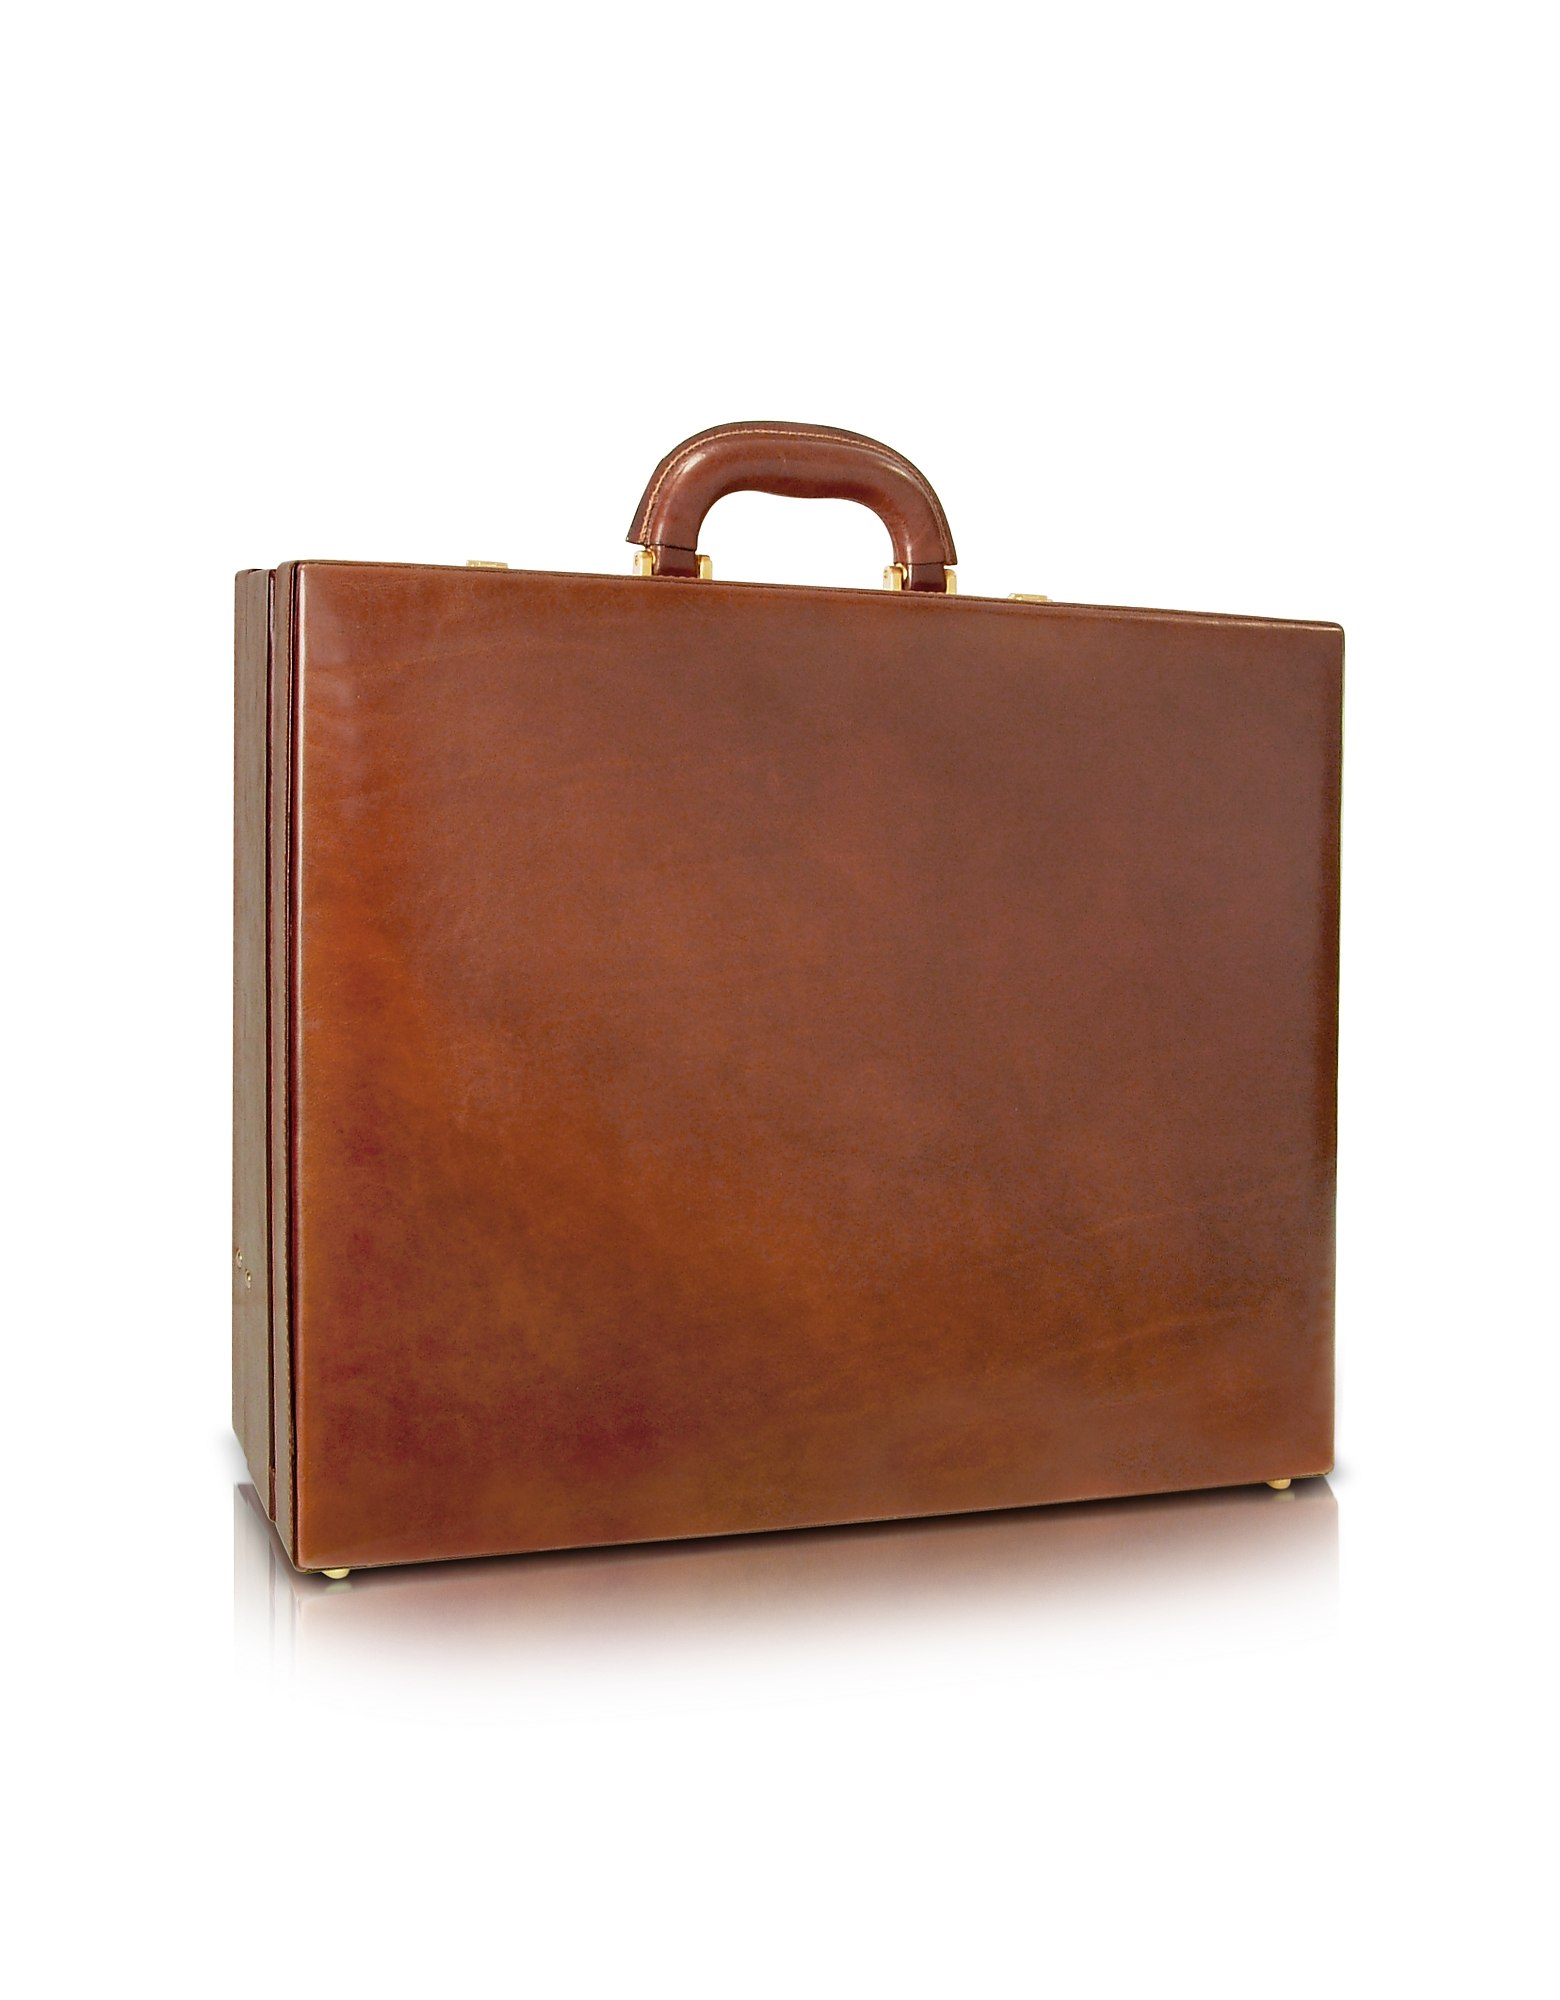 Chiarugi Briefcases, Men's Handmade Brown Leather Attache Briefcase